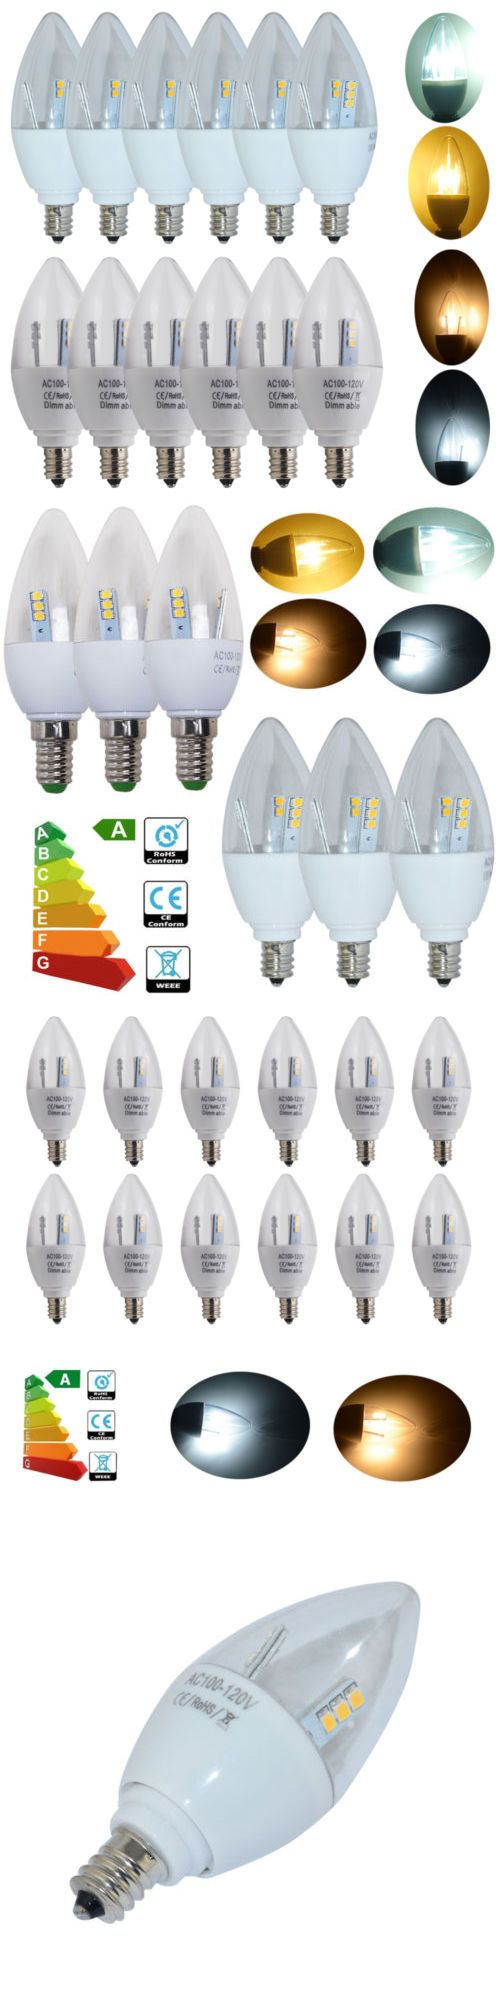 Lamps And Lighting: 24 1Pack E12 5W Dimmable Non-Dimmable Led Candle Bulb Spotlight Candelabra Lamp -> BUY IT NOW ONLY: $46.99 on eBay!